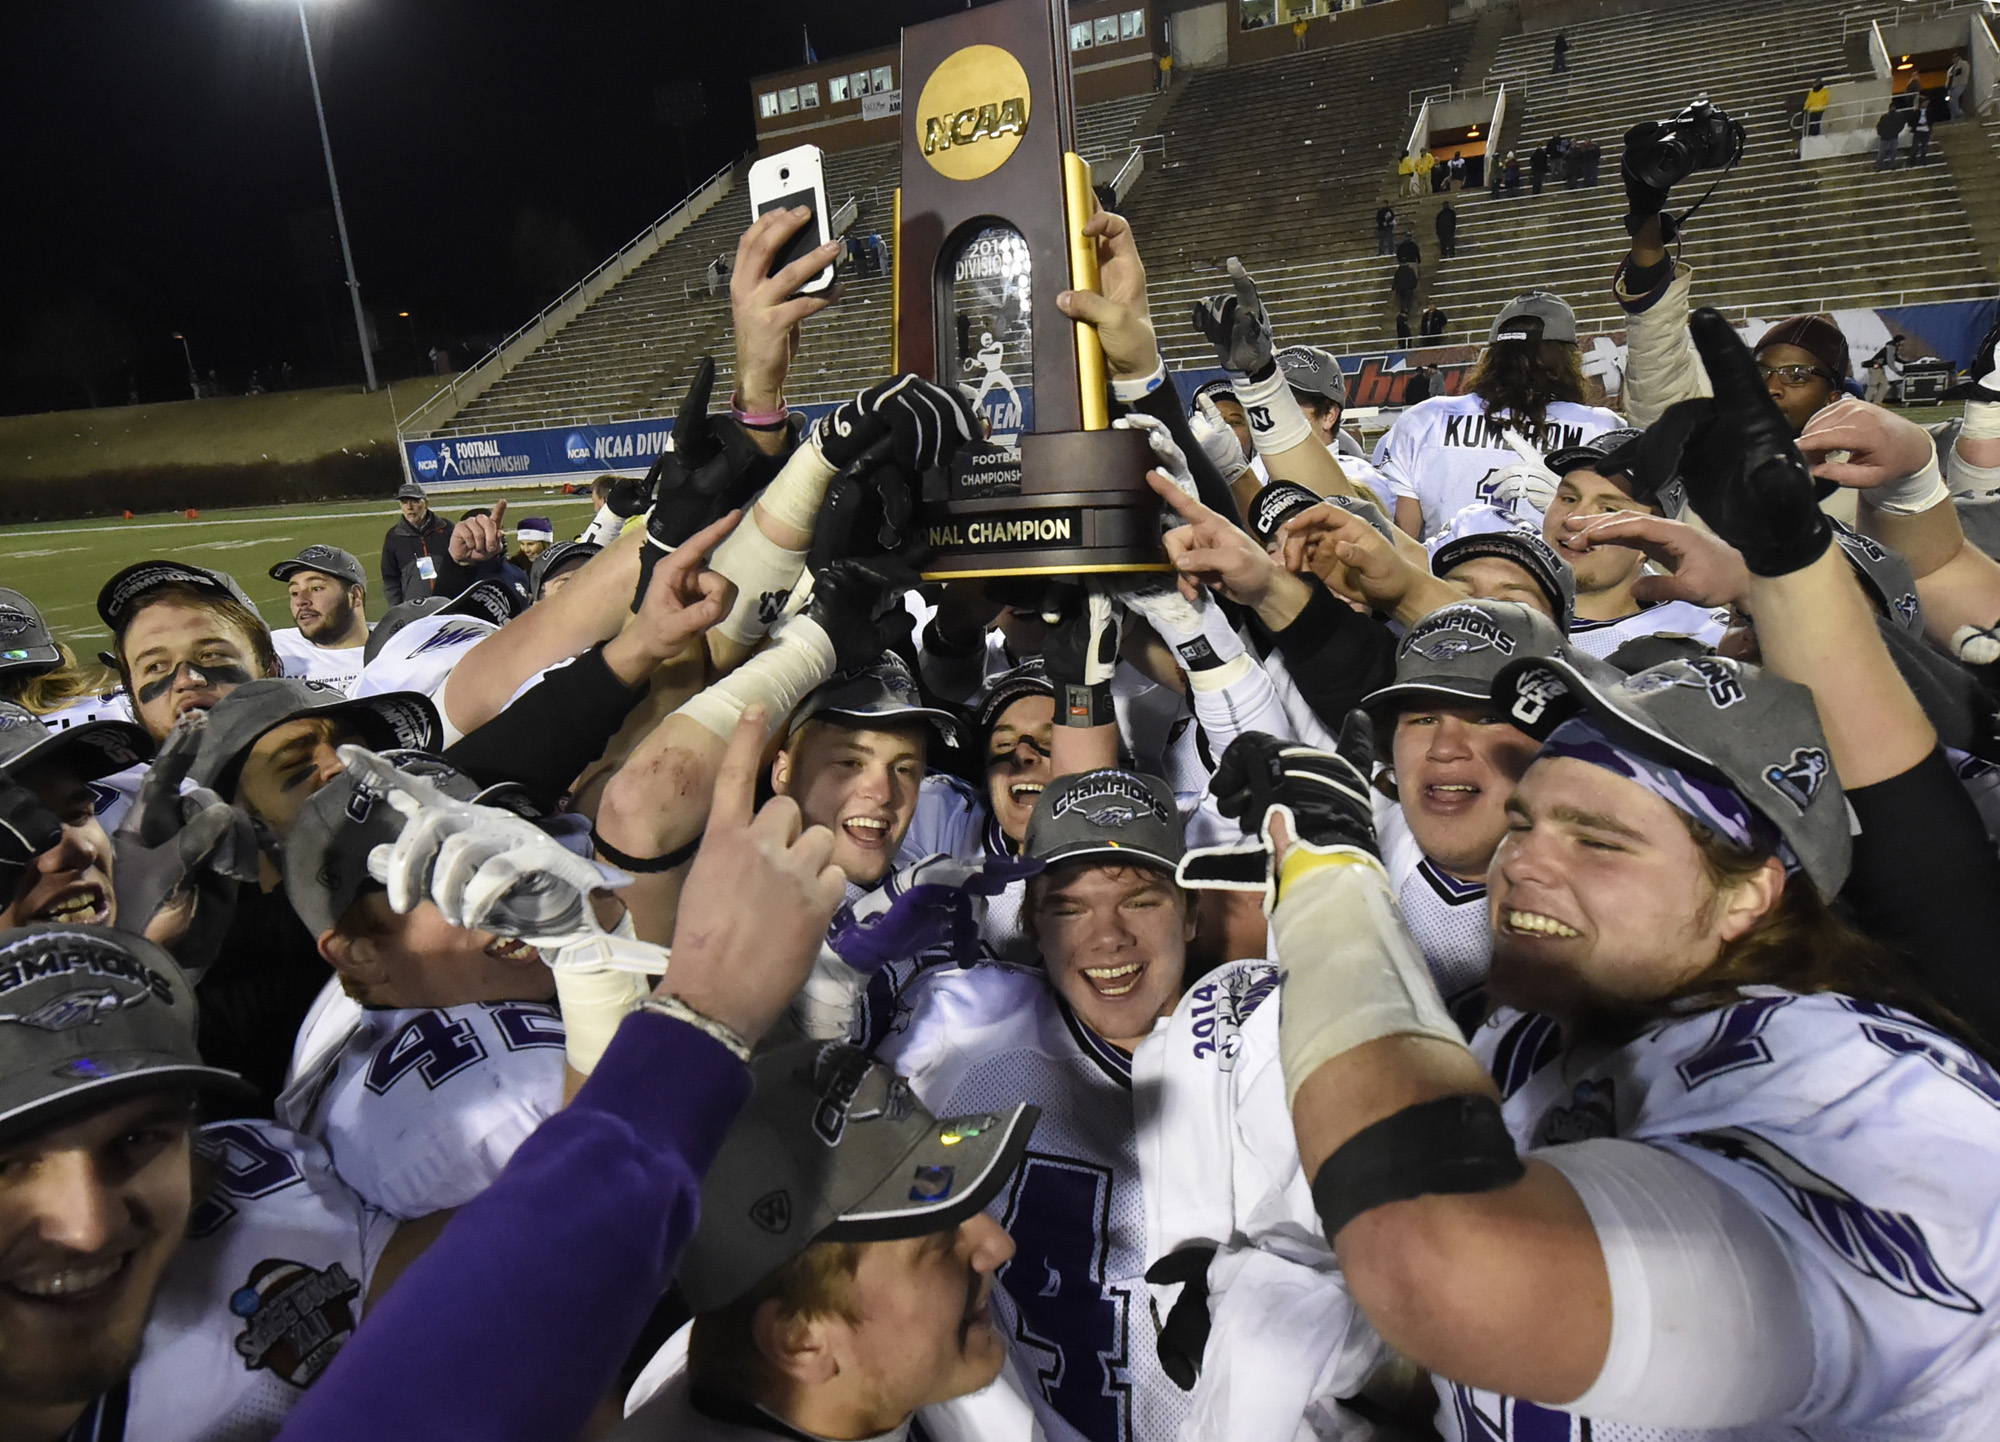 FILE - In this Dec. 19, 2014, file photo, Wisconsin-Whitewater players celebrate after defeating Mount Union 43-34, winning the NCAA Division III championship college football game at Salem Stadium in Salem, Va. One of the biggest selling points that Kevi